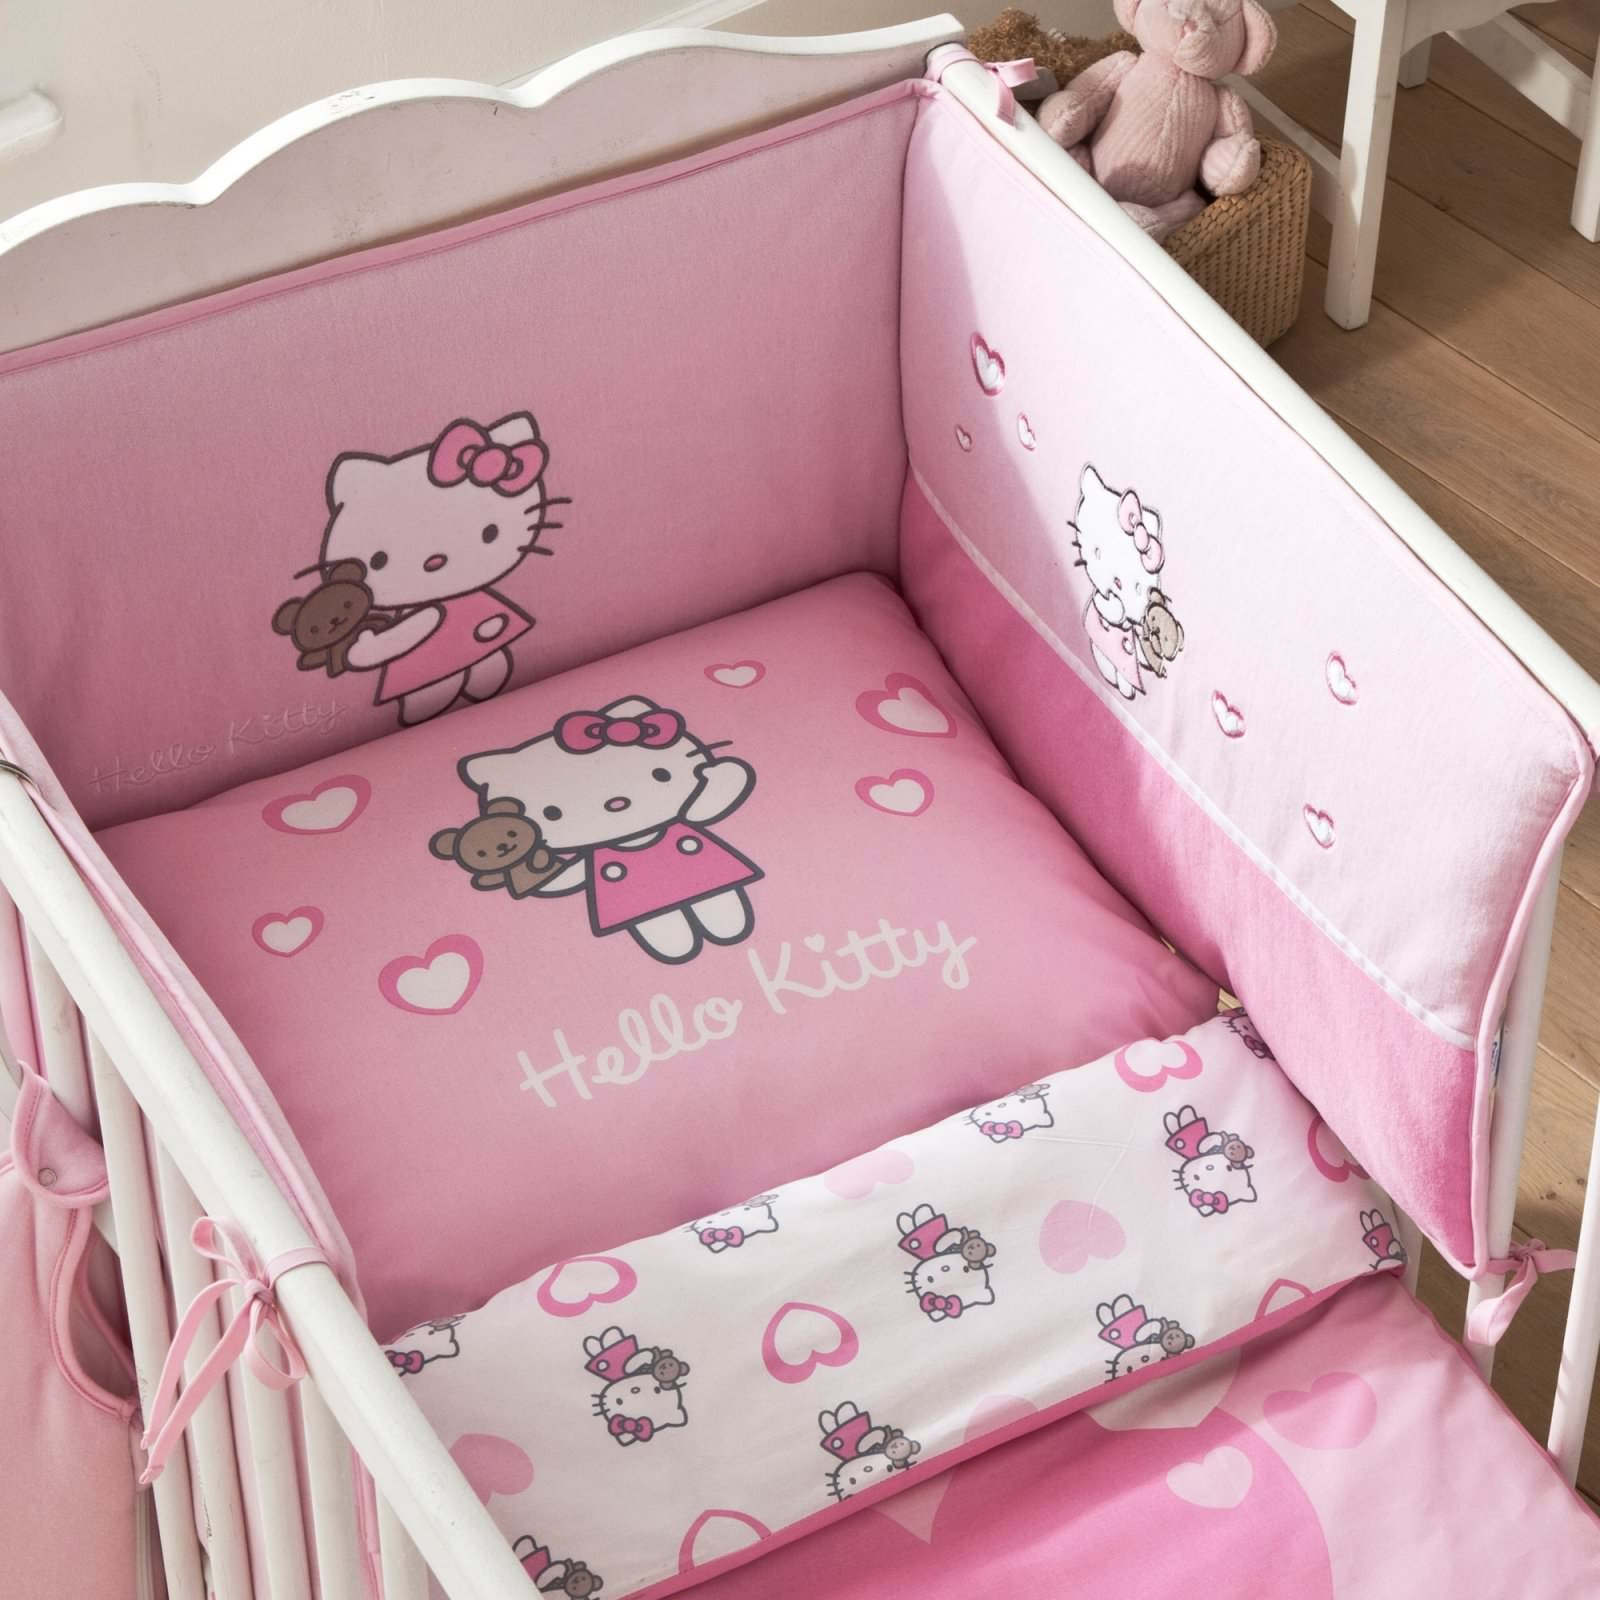 tour de lit hello kitty alice 40 x 180 cm decokids. Black Bedroom Furniture Sets. Home Design Ideas